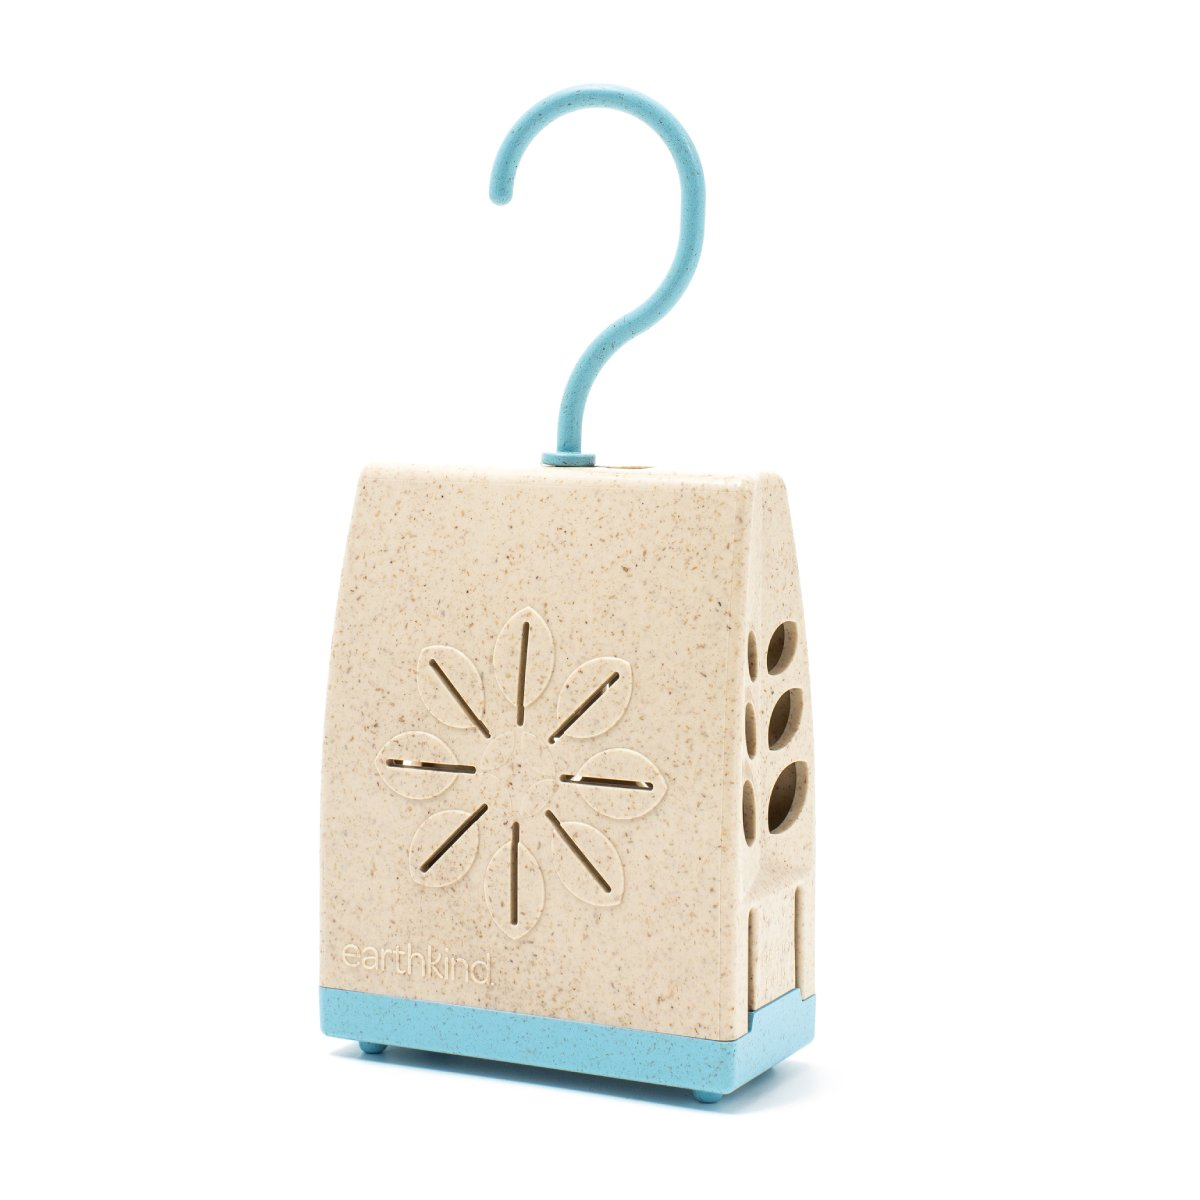 Stay Away Pouch Pod - Bio-Based - Made of Flax and Other Plant Fibers, Environmentally Safe